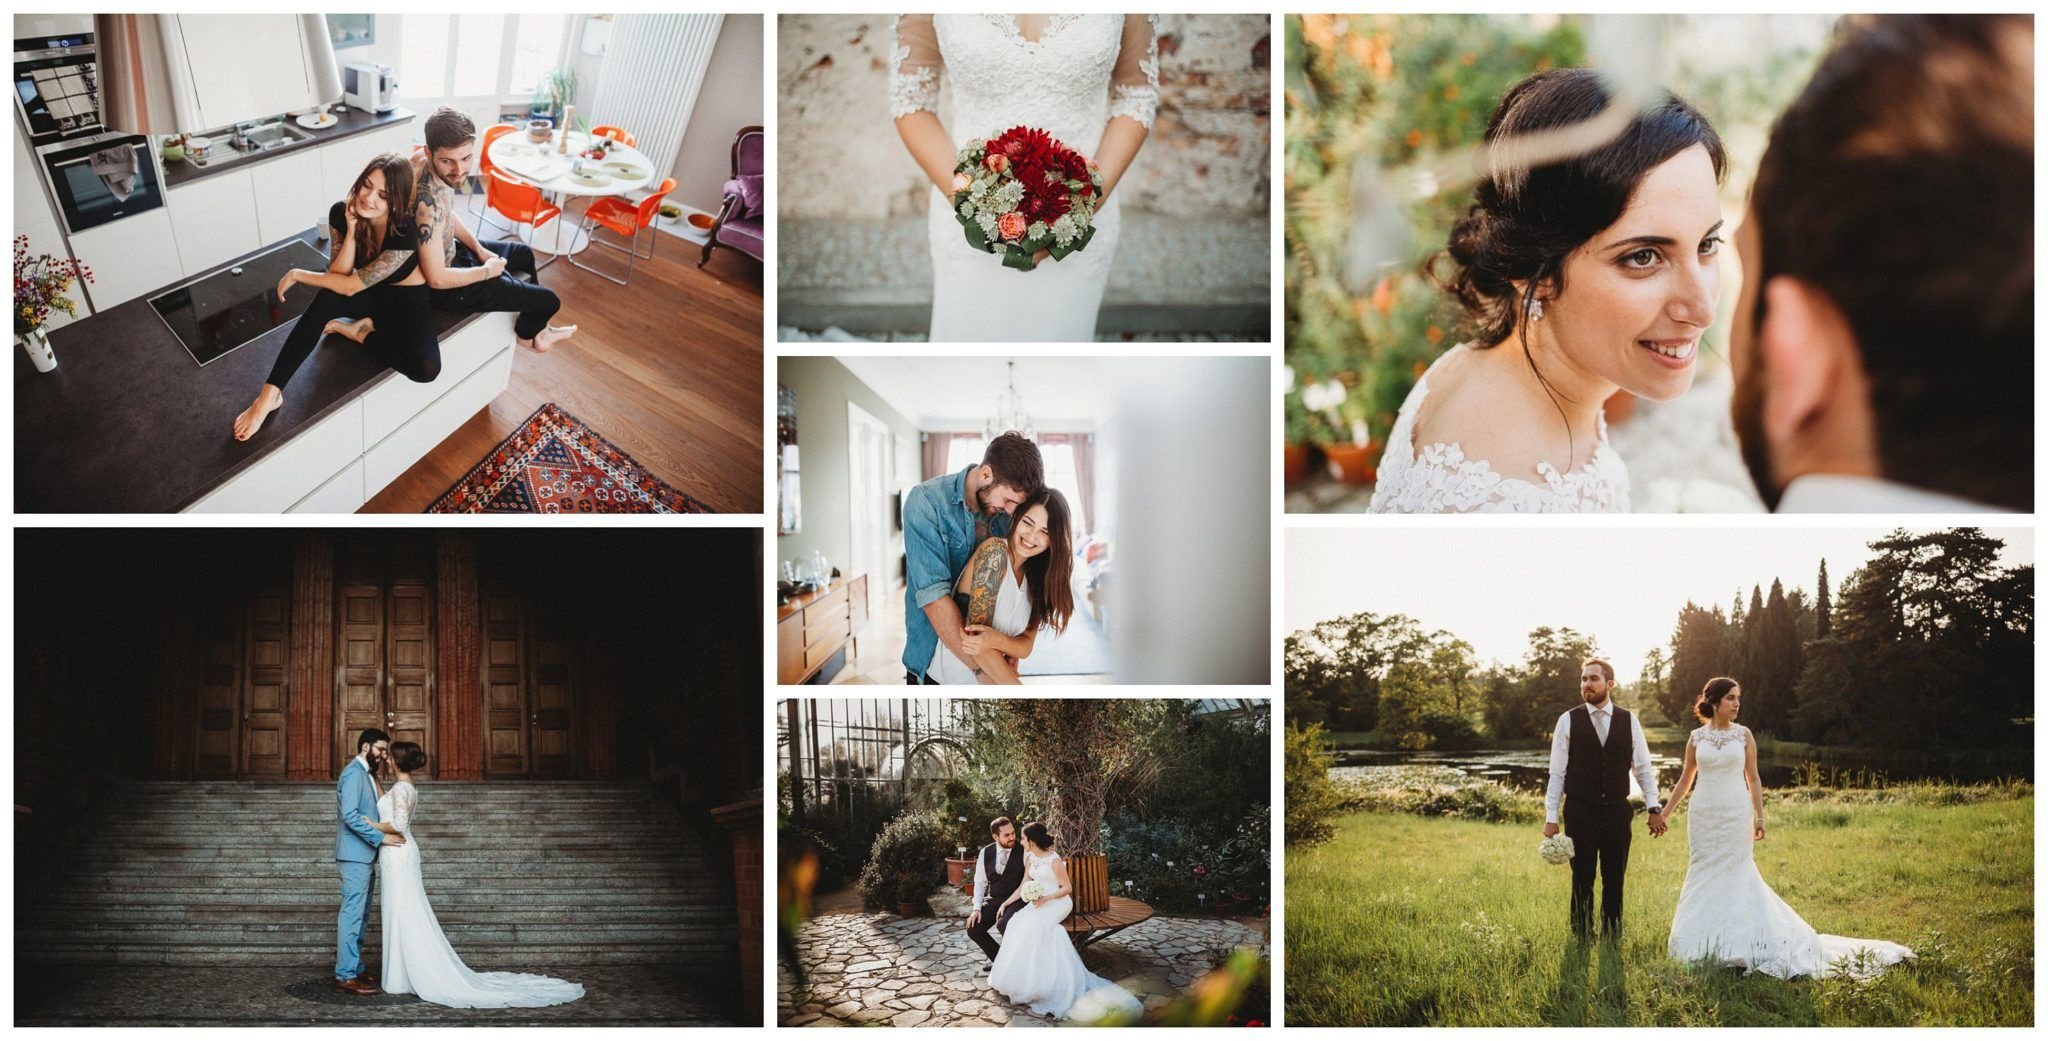 Sven Malojlo Smal Lightroom Presets Help Photographers Sd Up Their Worklflow Give You Consistent Colors With A Creative Touch And Flawless Skintones